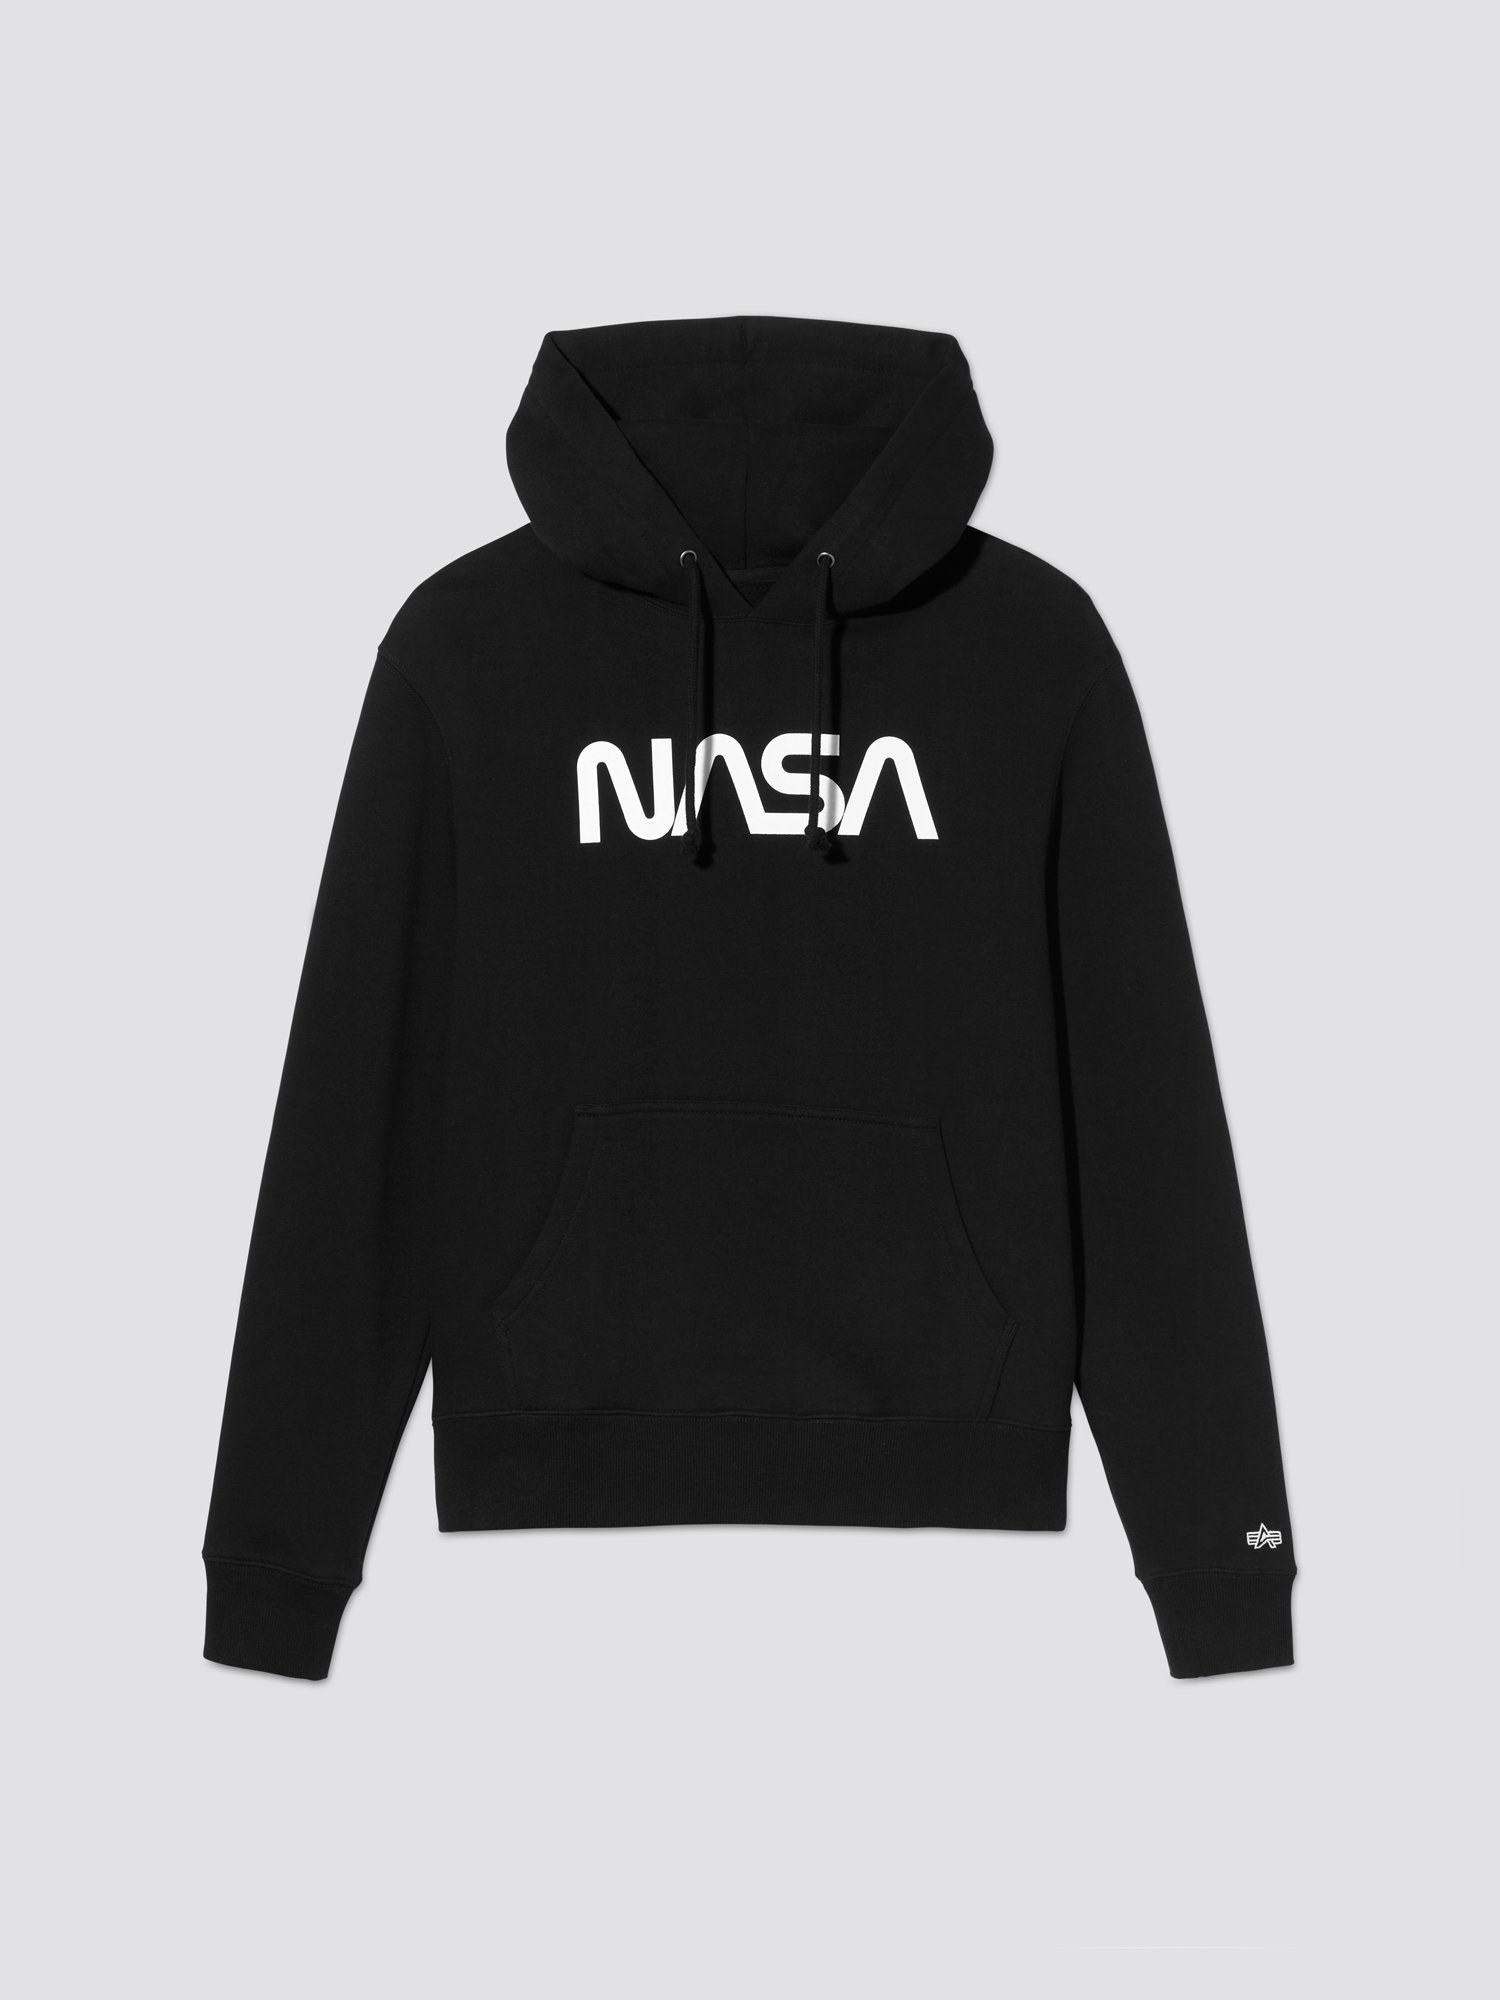 the nasa ii hoodie in black